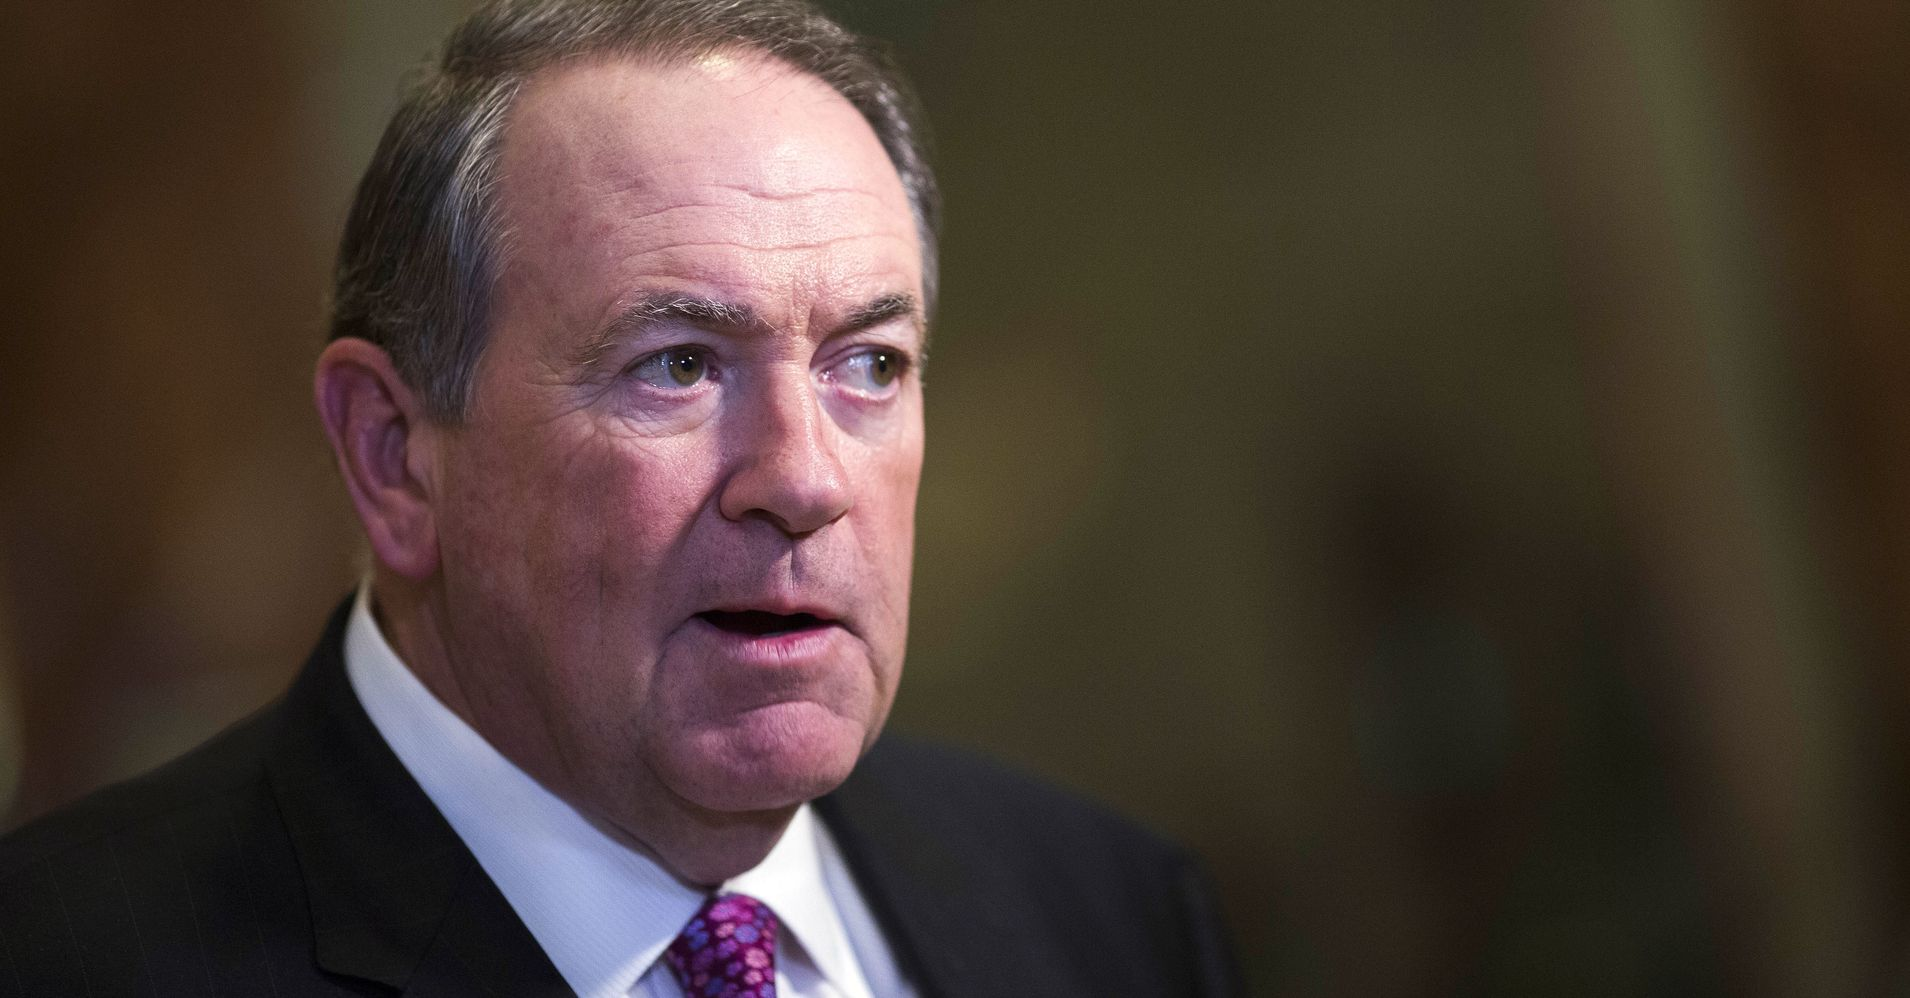 Mike Huckabee Seems To Equate Kids Torn From Parents With MS-13 In Racist Tweet